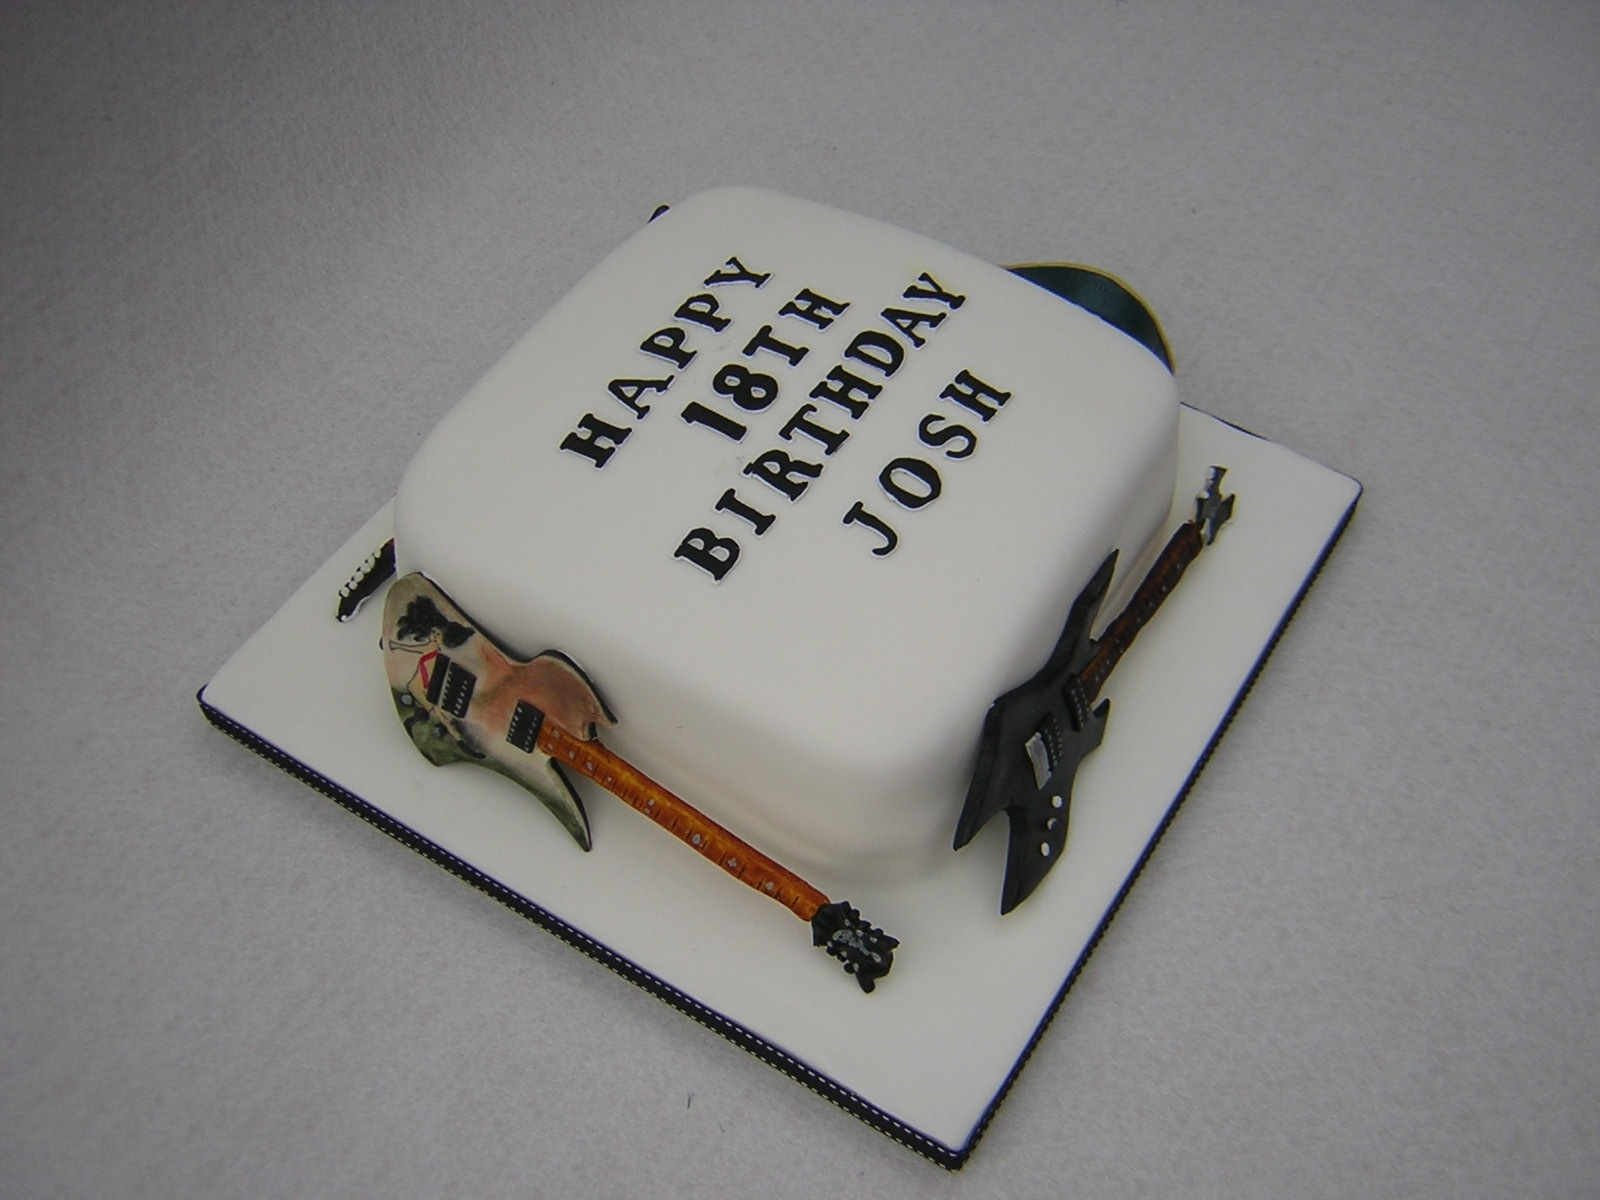 Birthday Cake Guitar Design With Name : Index of /wp-content/gallery/birthday-cakes-18th-amp-21st